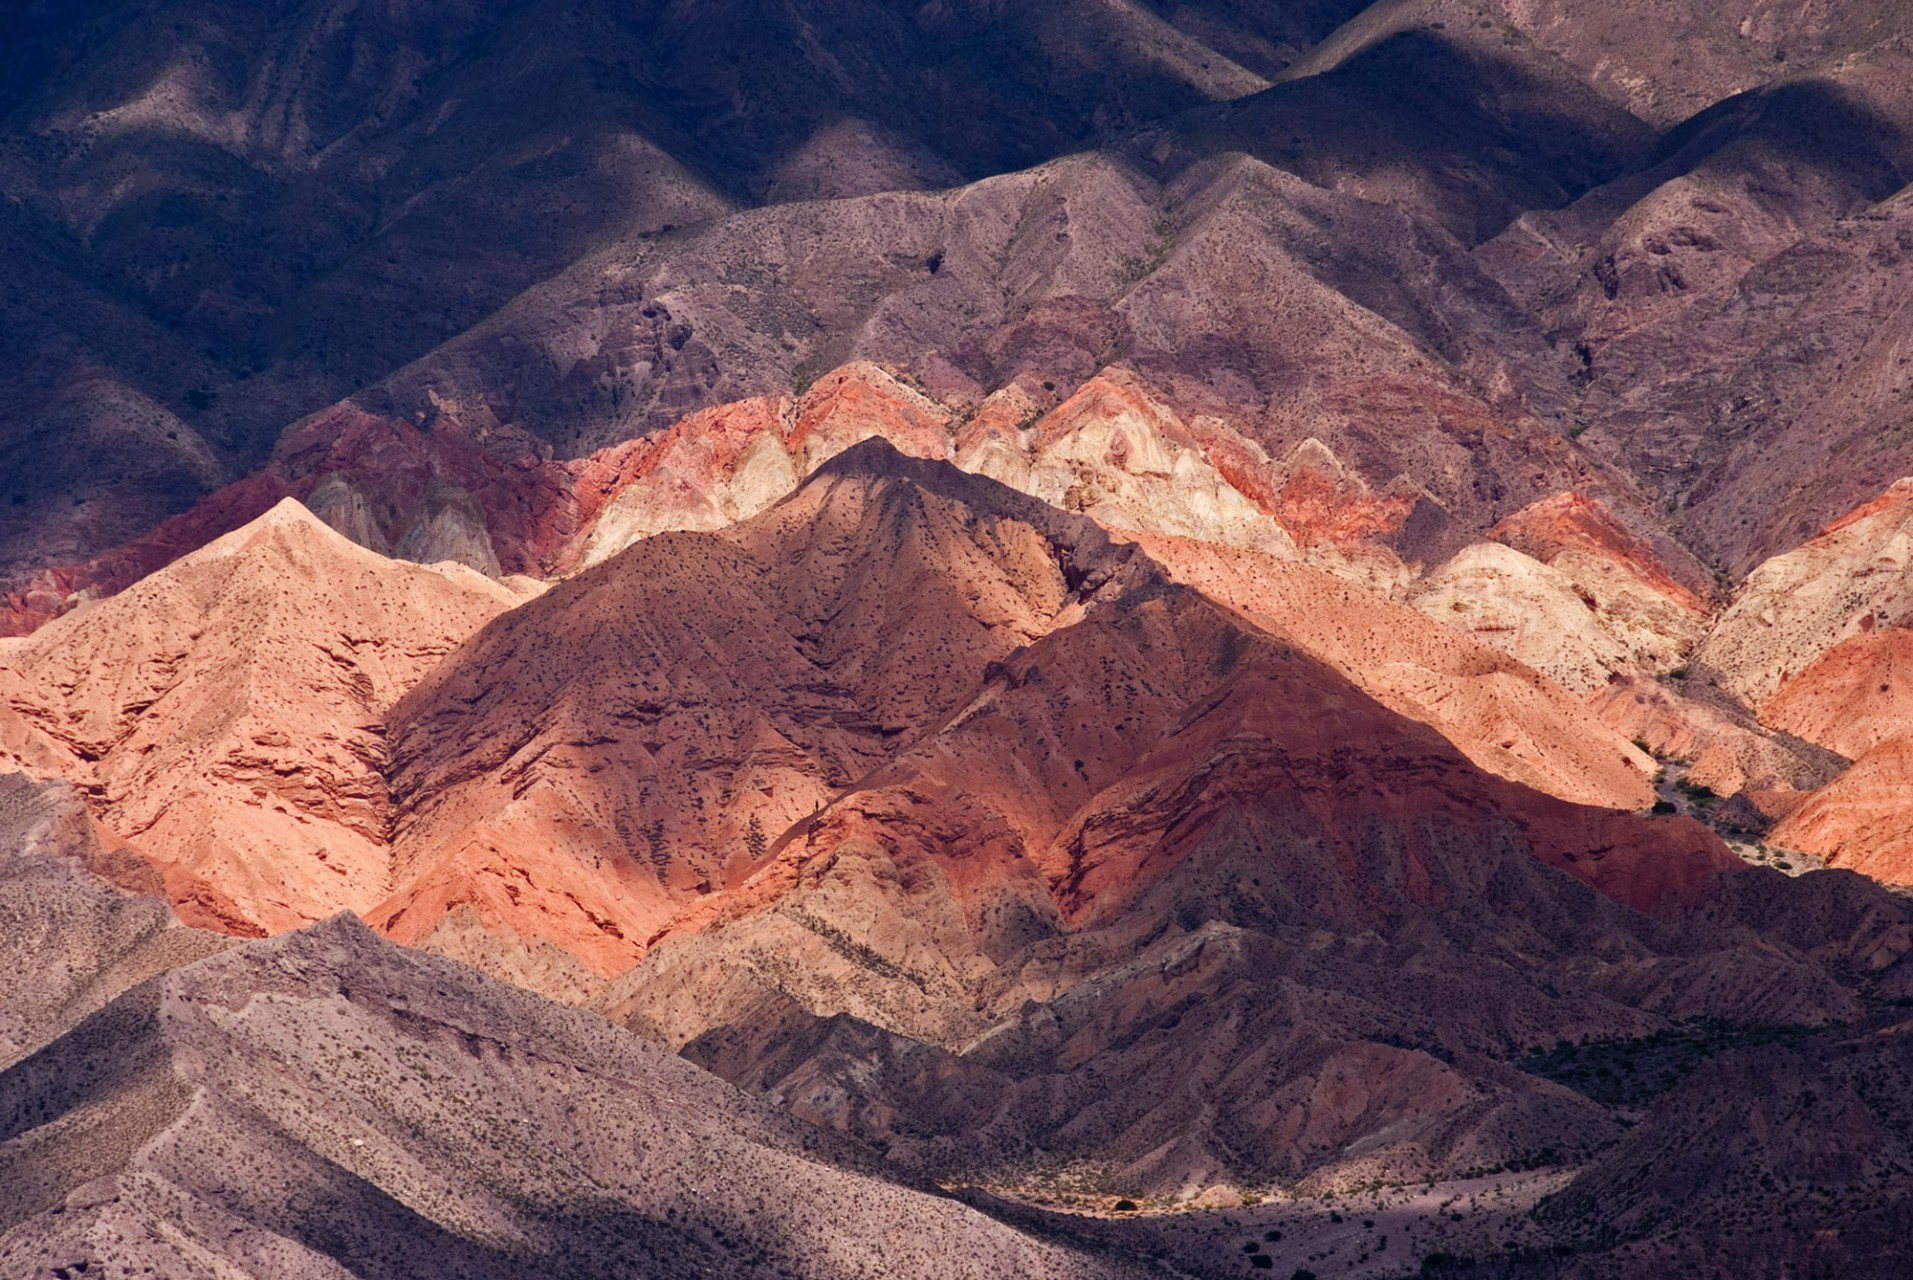 The Andes mountains in the Quebrada de Humahuaca, Argentina